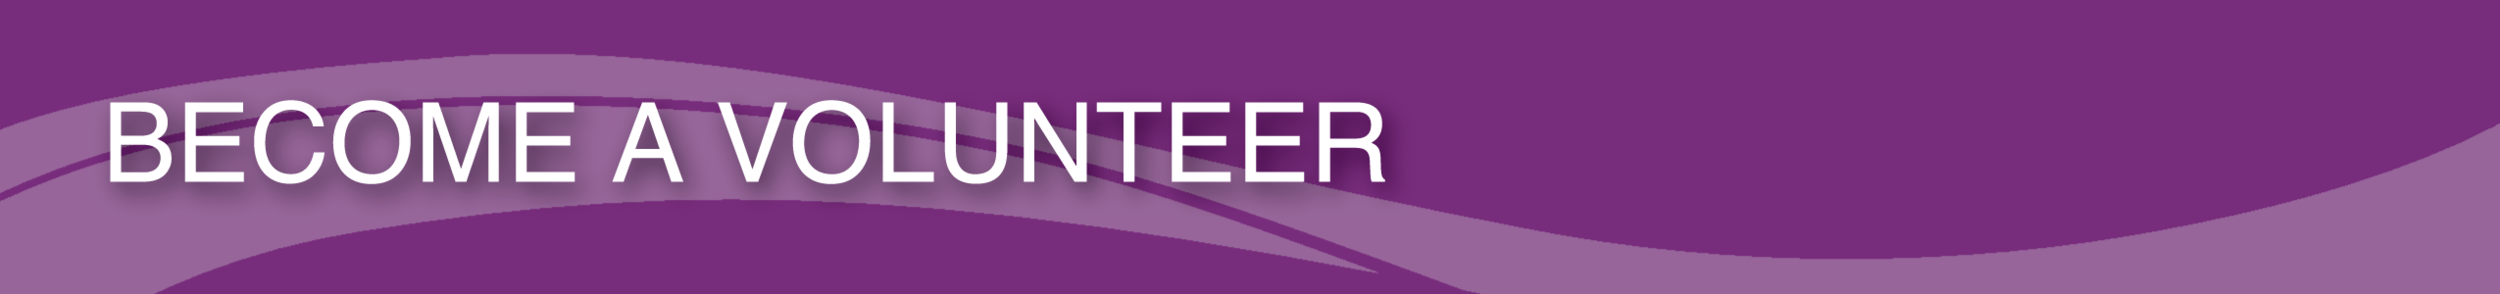 WDHF_HEADER_BECOME A VOLUNTEER.png